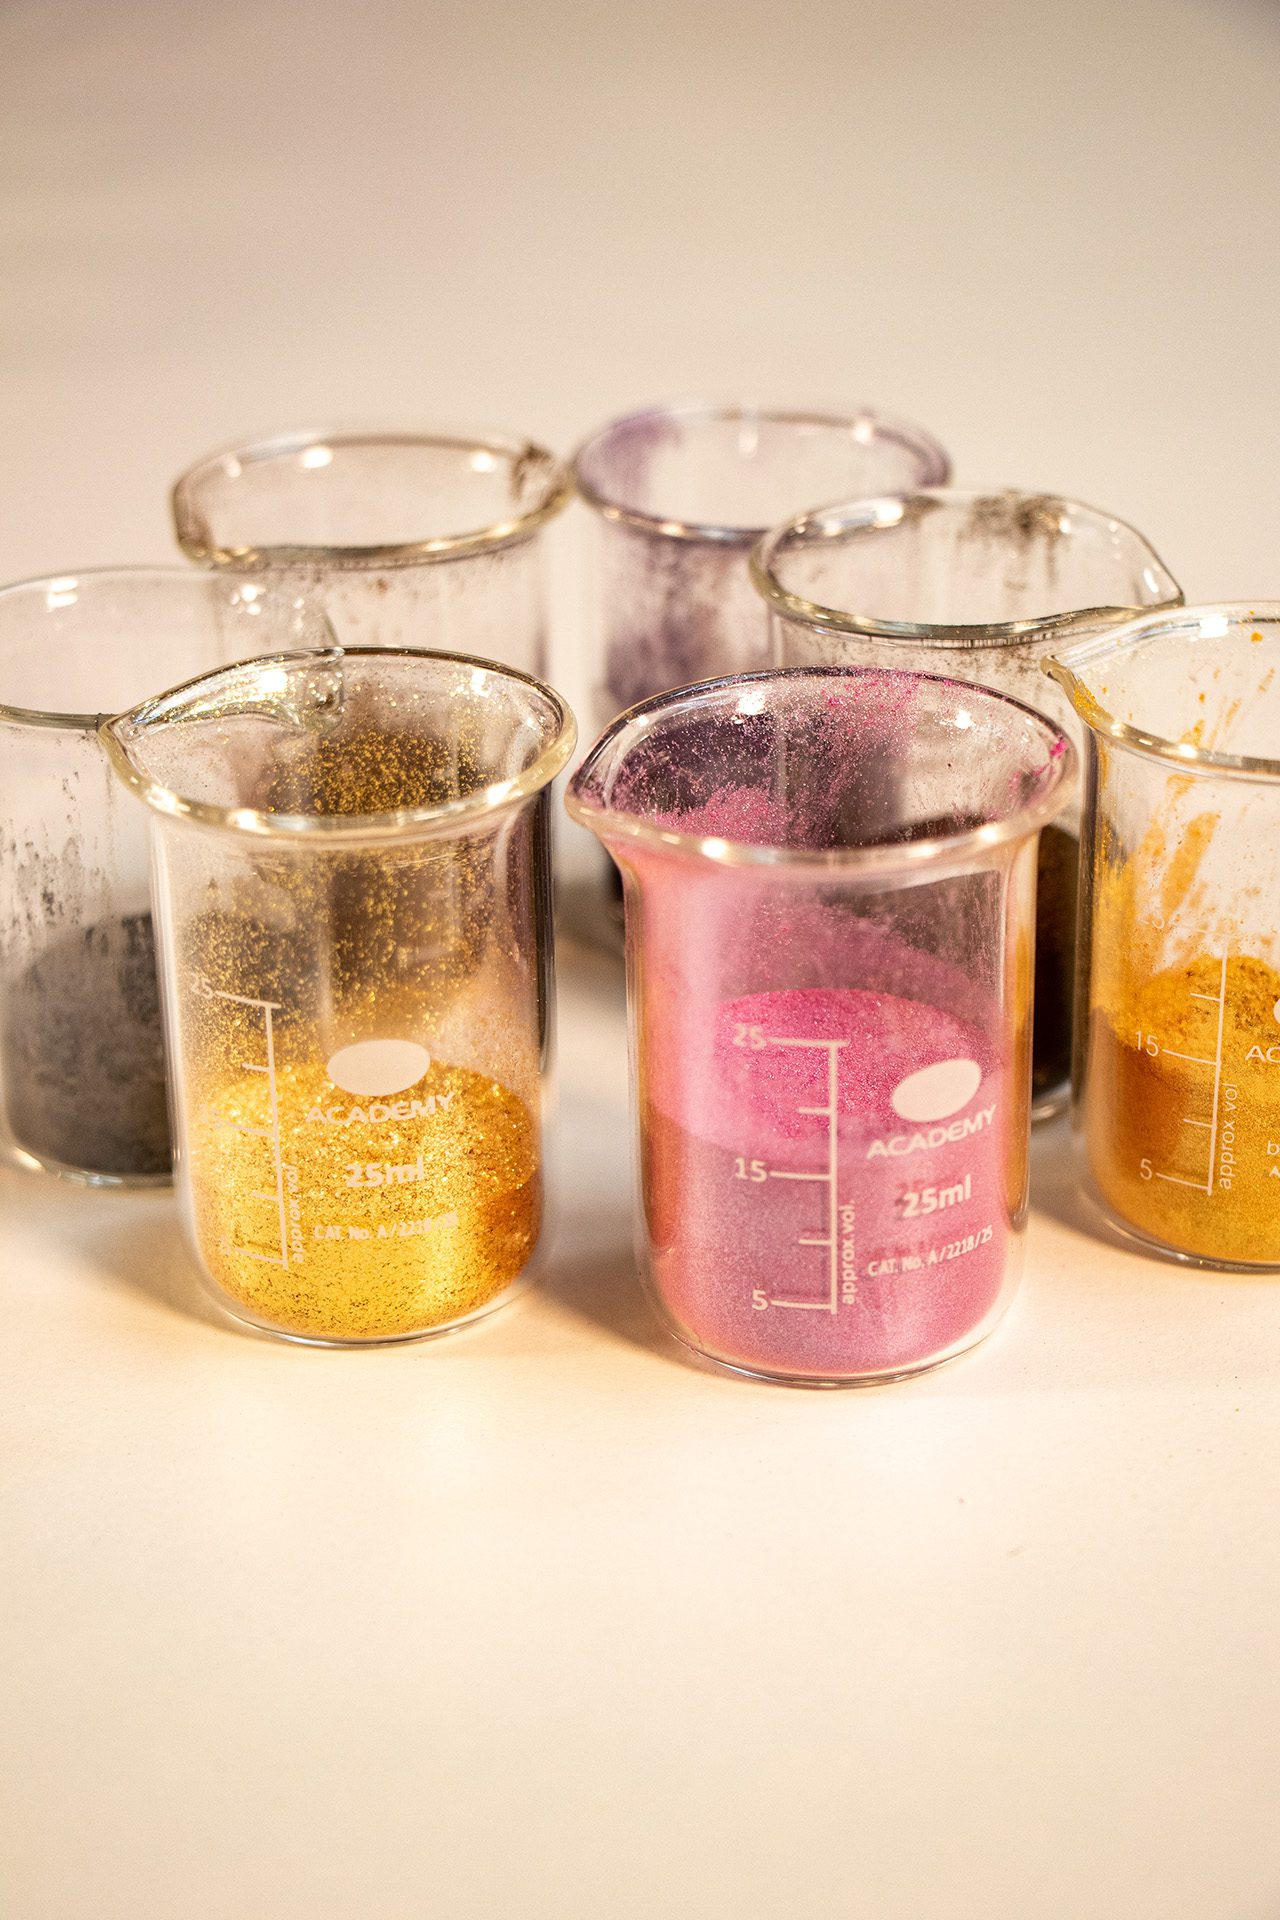 How to Make Your Own Mineral Makeup Skincare Formulation